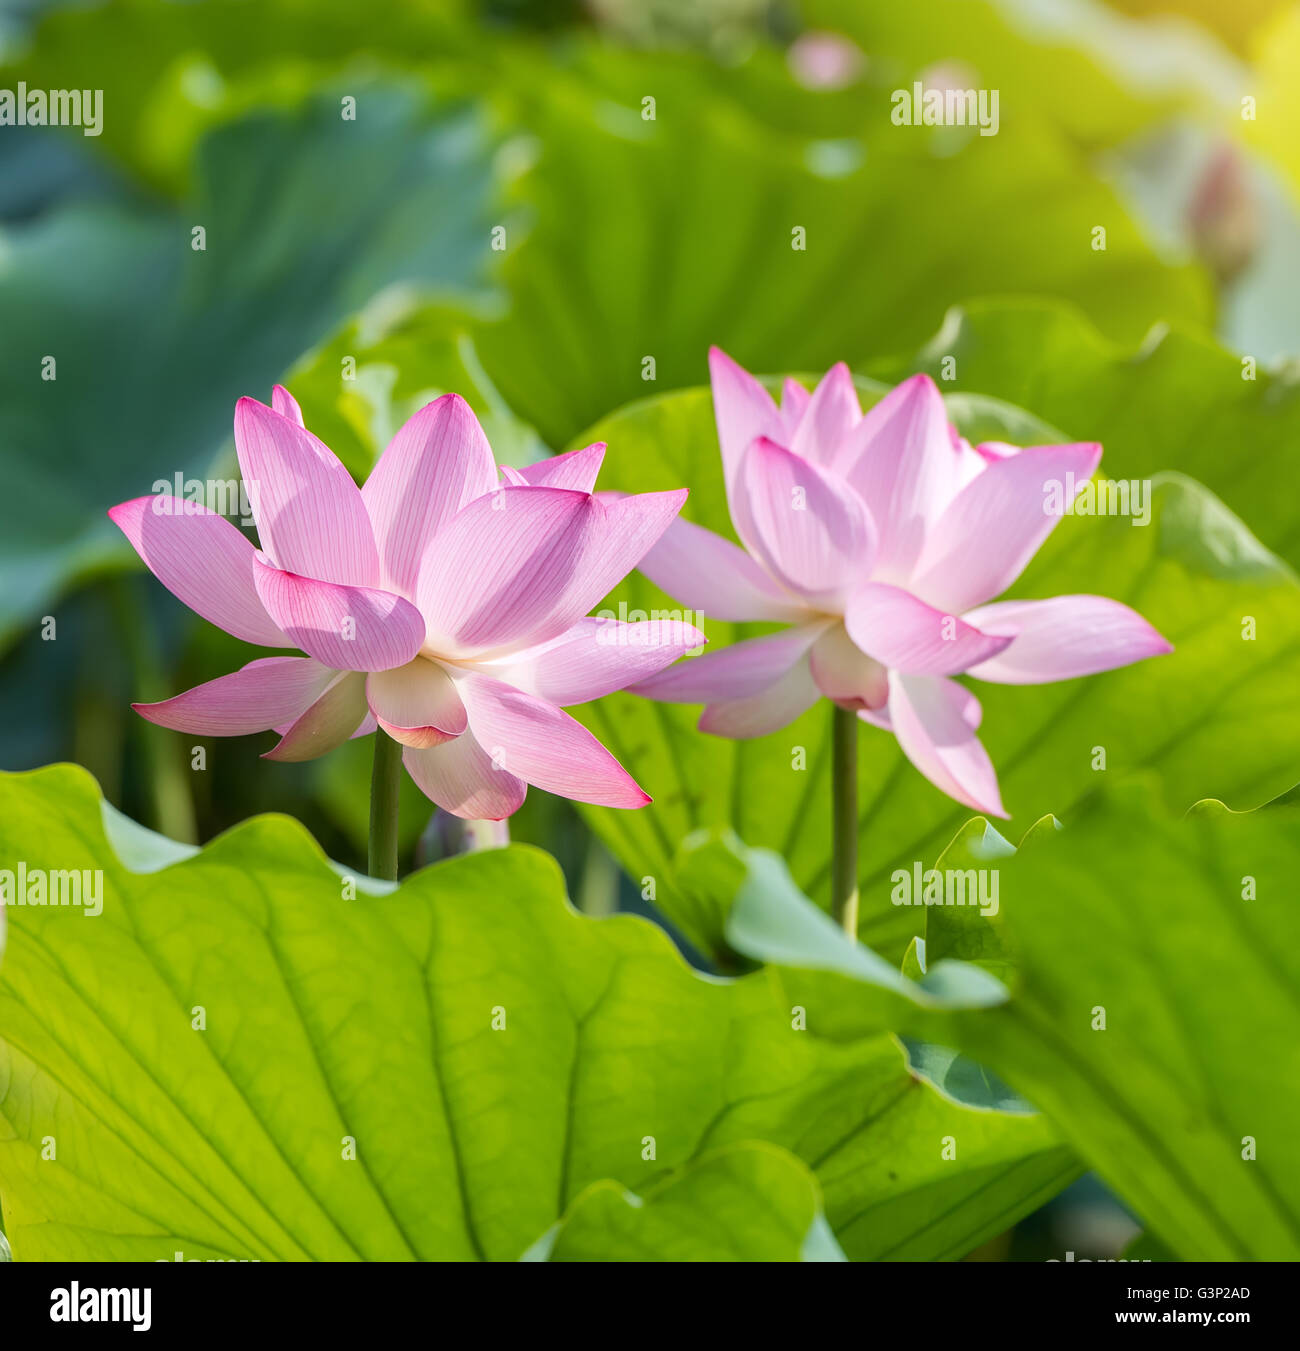 Lotus flower blooming on pond stock photo 105590981 alamy lotus flower blooming on pond izmirmasajfo